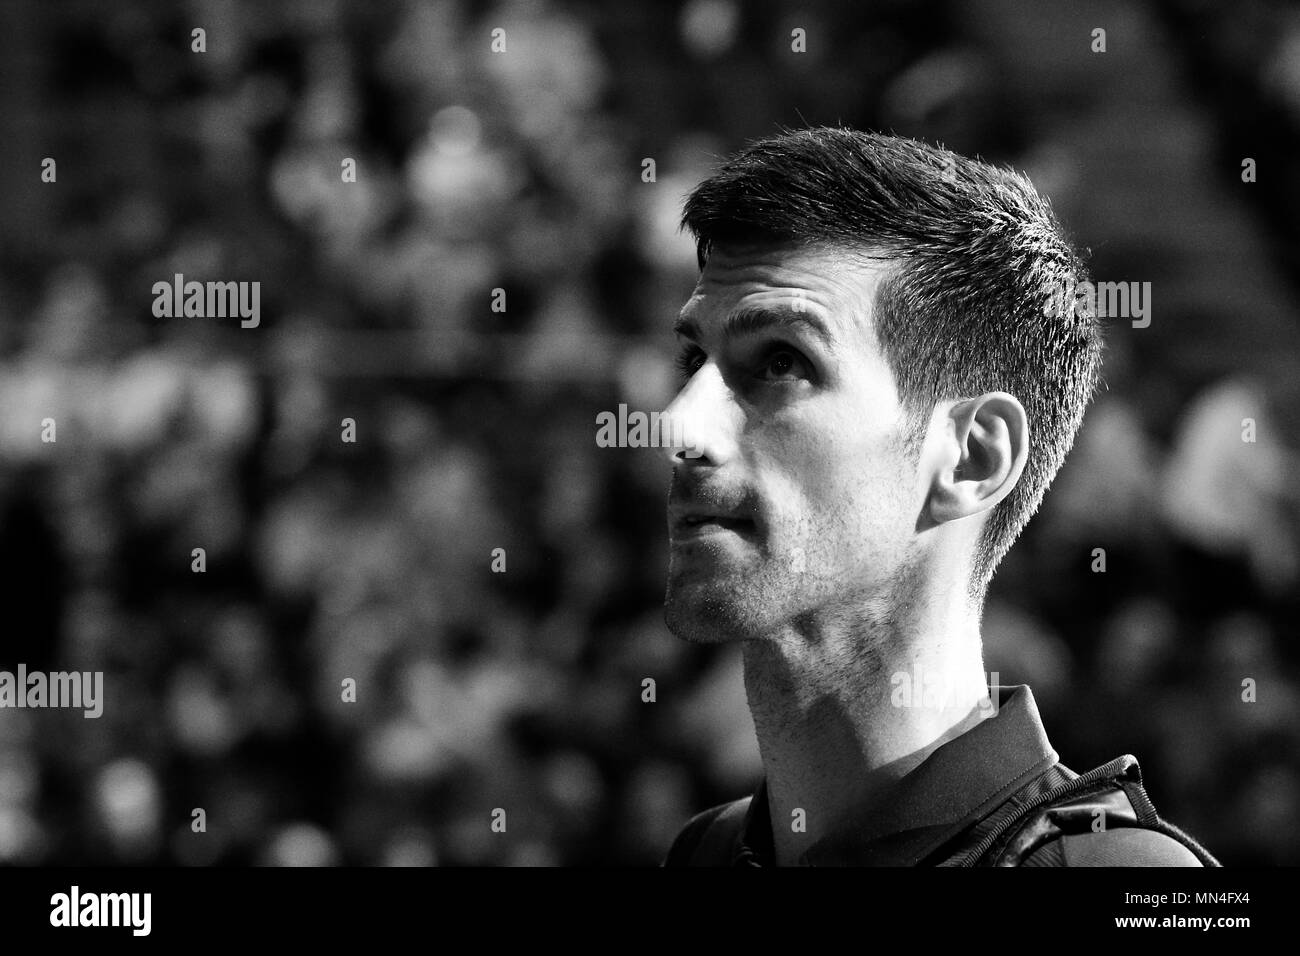 LONDON, ENGLAND - NOVEMBER 17: (Editors Note: Image Converted to Black and White) Novak Djokovic of Serbia leaving the court after victory in his men's singles match against David Goffin of Belgium on day five of the ATP World Tour Finals at the O2 Arena on November 17, 2016 in London, England. - Stock Image